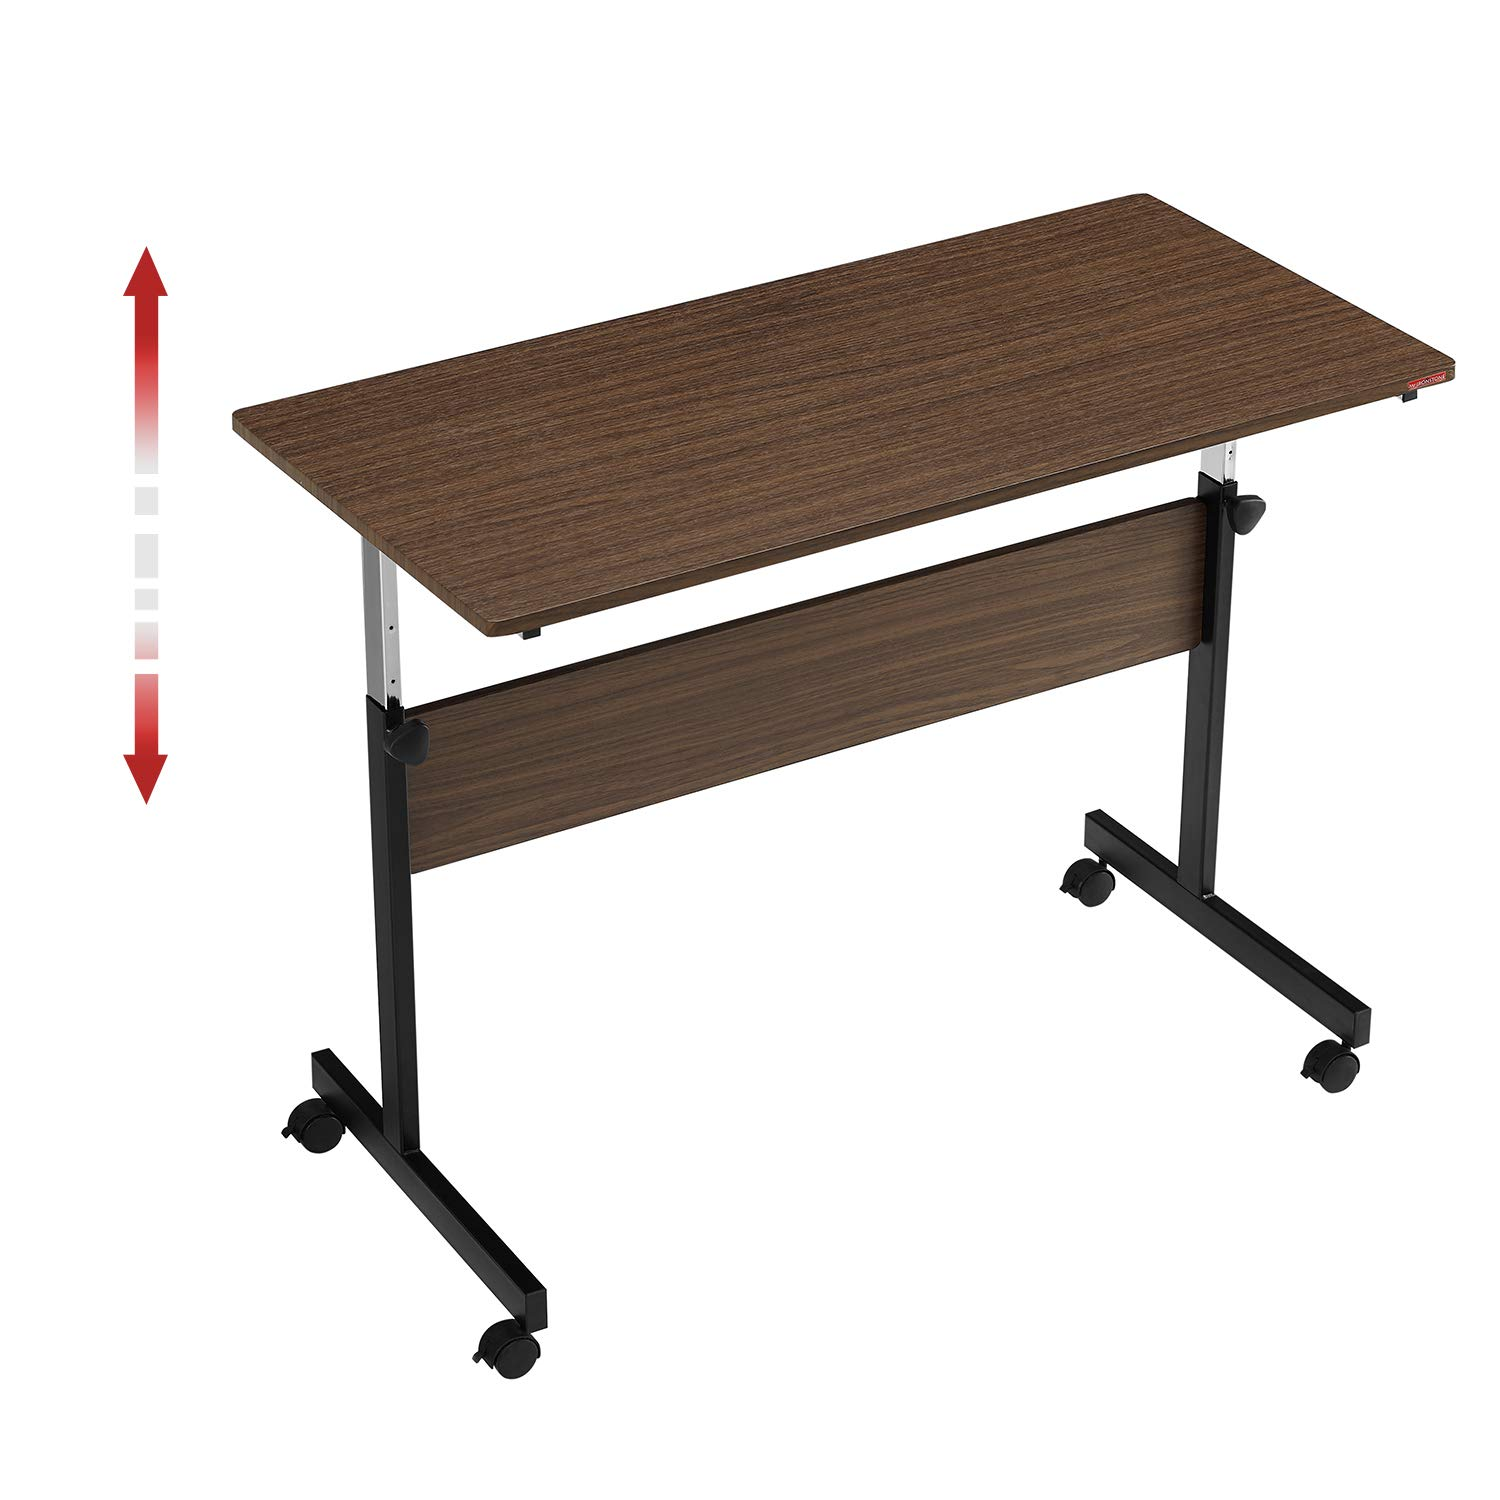 Mr IRONSTONE Height Adjustable Desk Sit-Stand 47.6'' Elevate Mobile Computer Desk Home & Office Workstation with Rolling Wheels (Walnut)